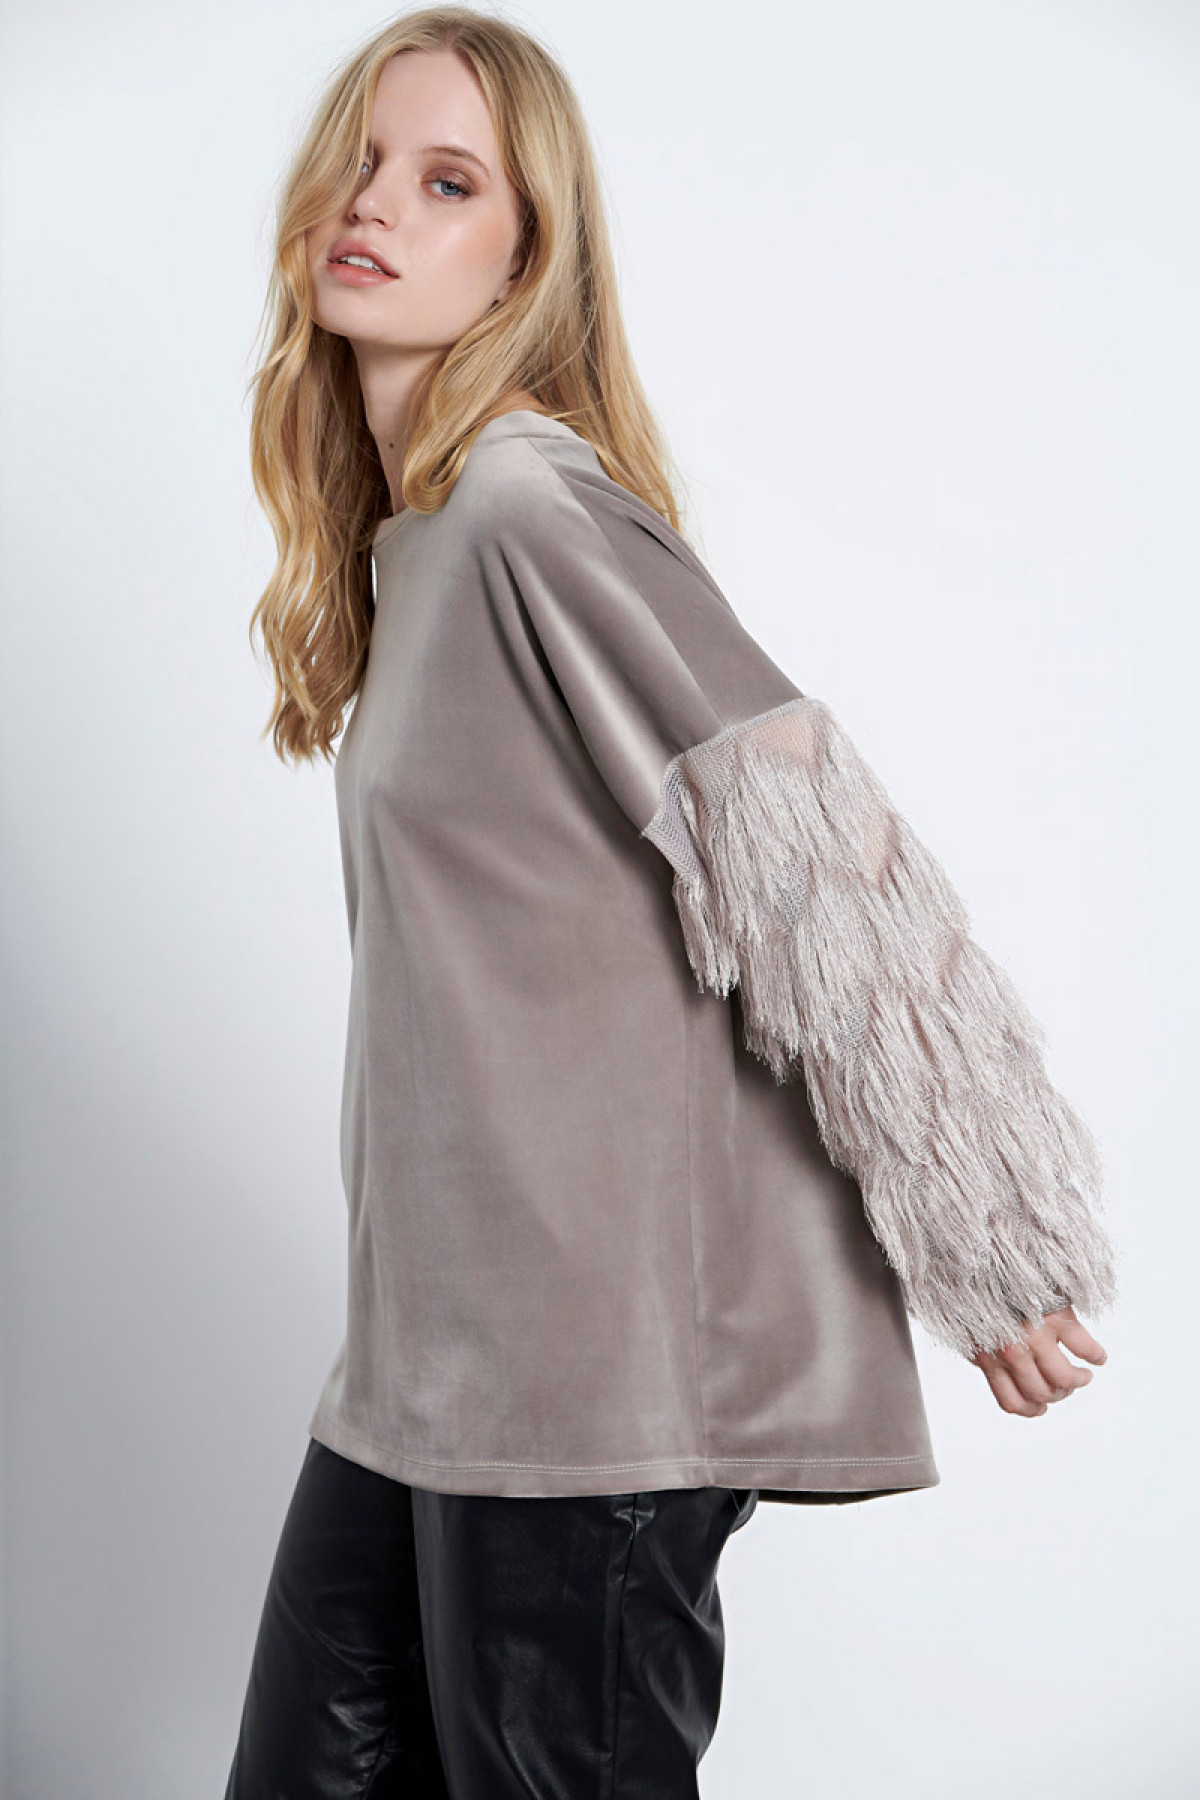 GRAY VELVET TOP WITH FRINGED SLEEVES